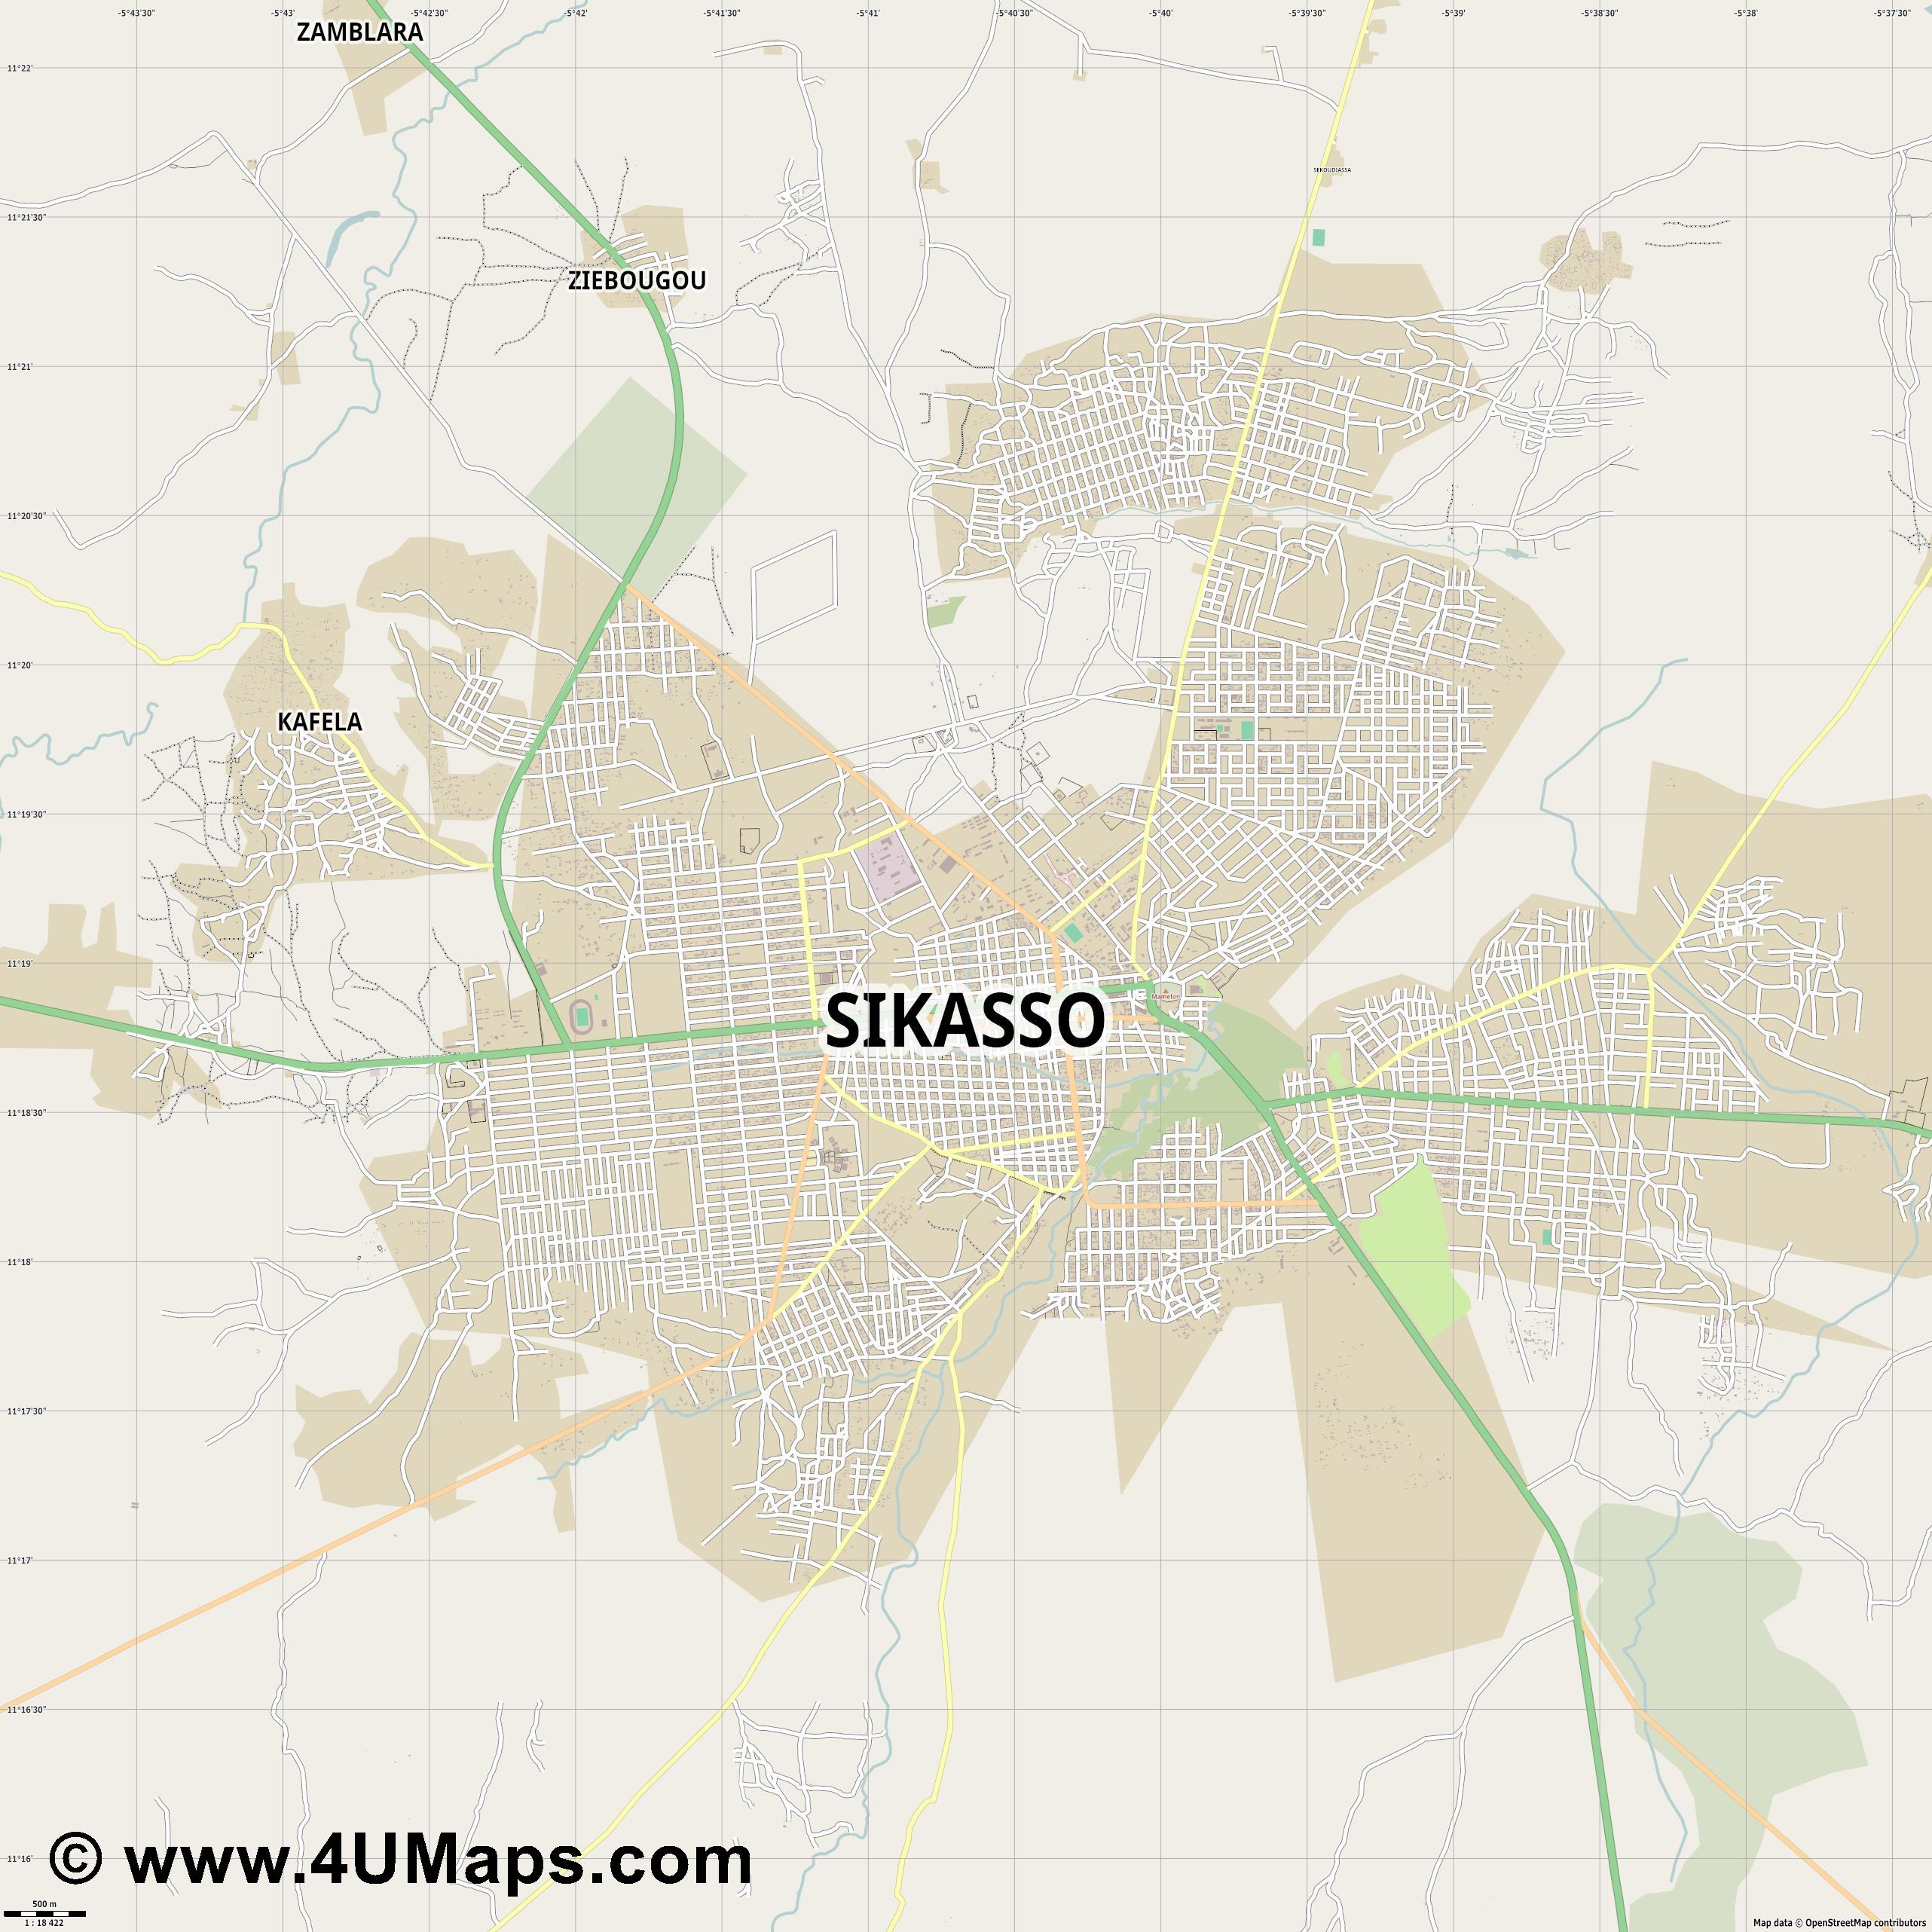 Sikasso  jpg ultra high detail preview vector city map